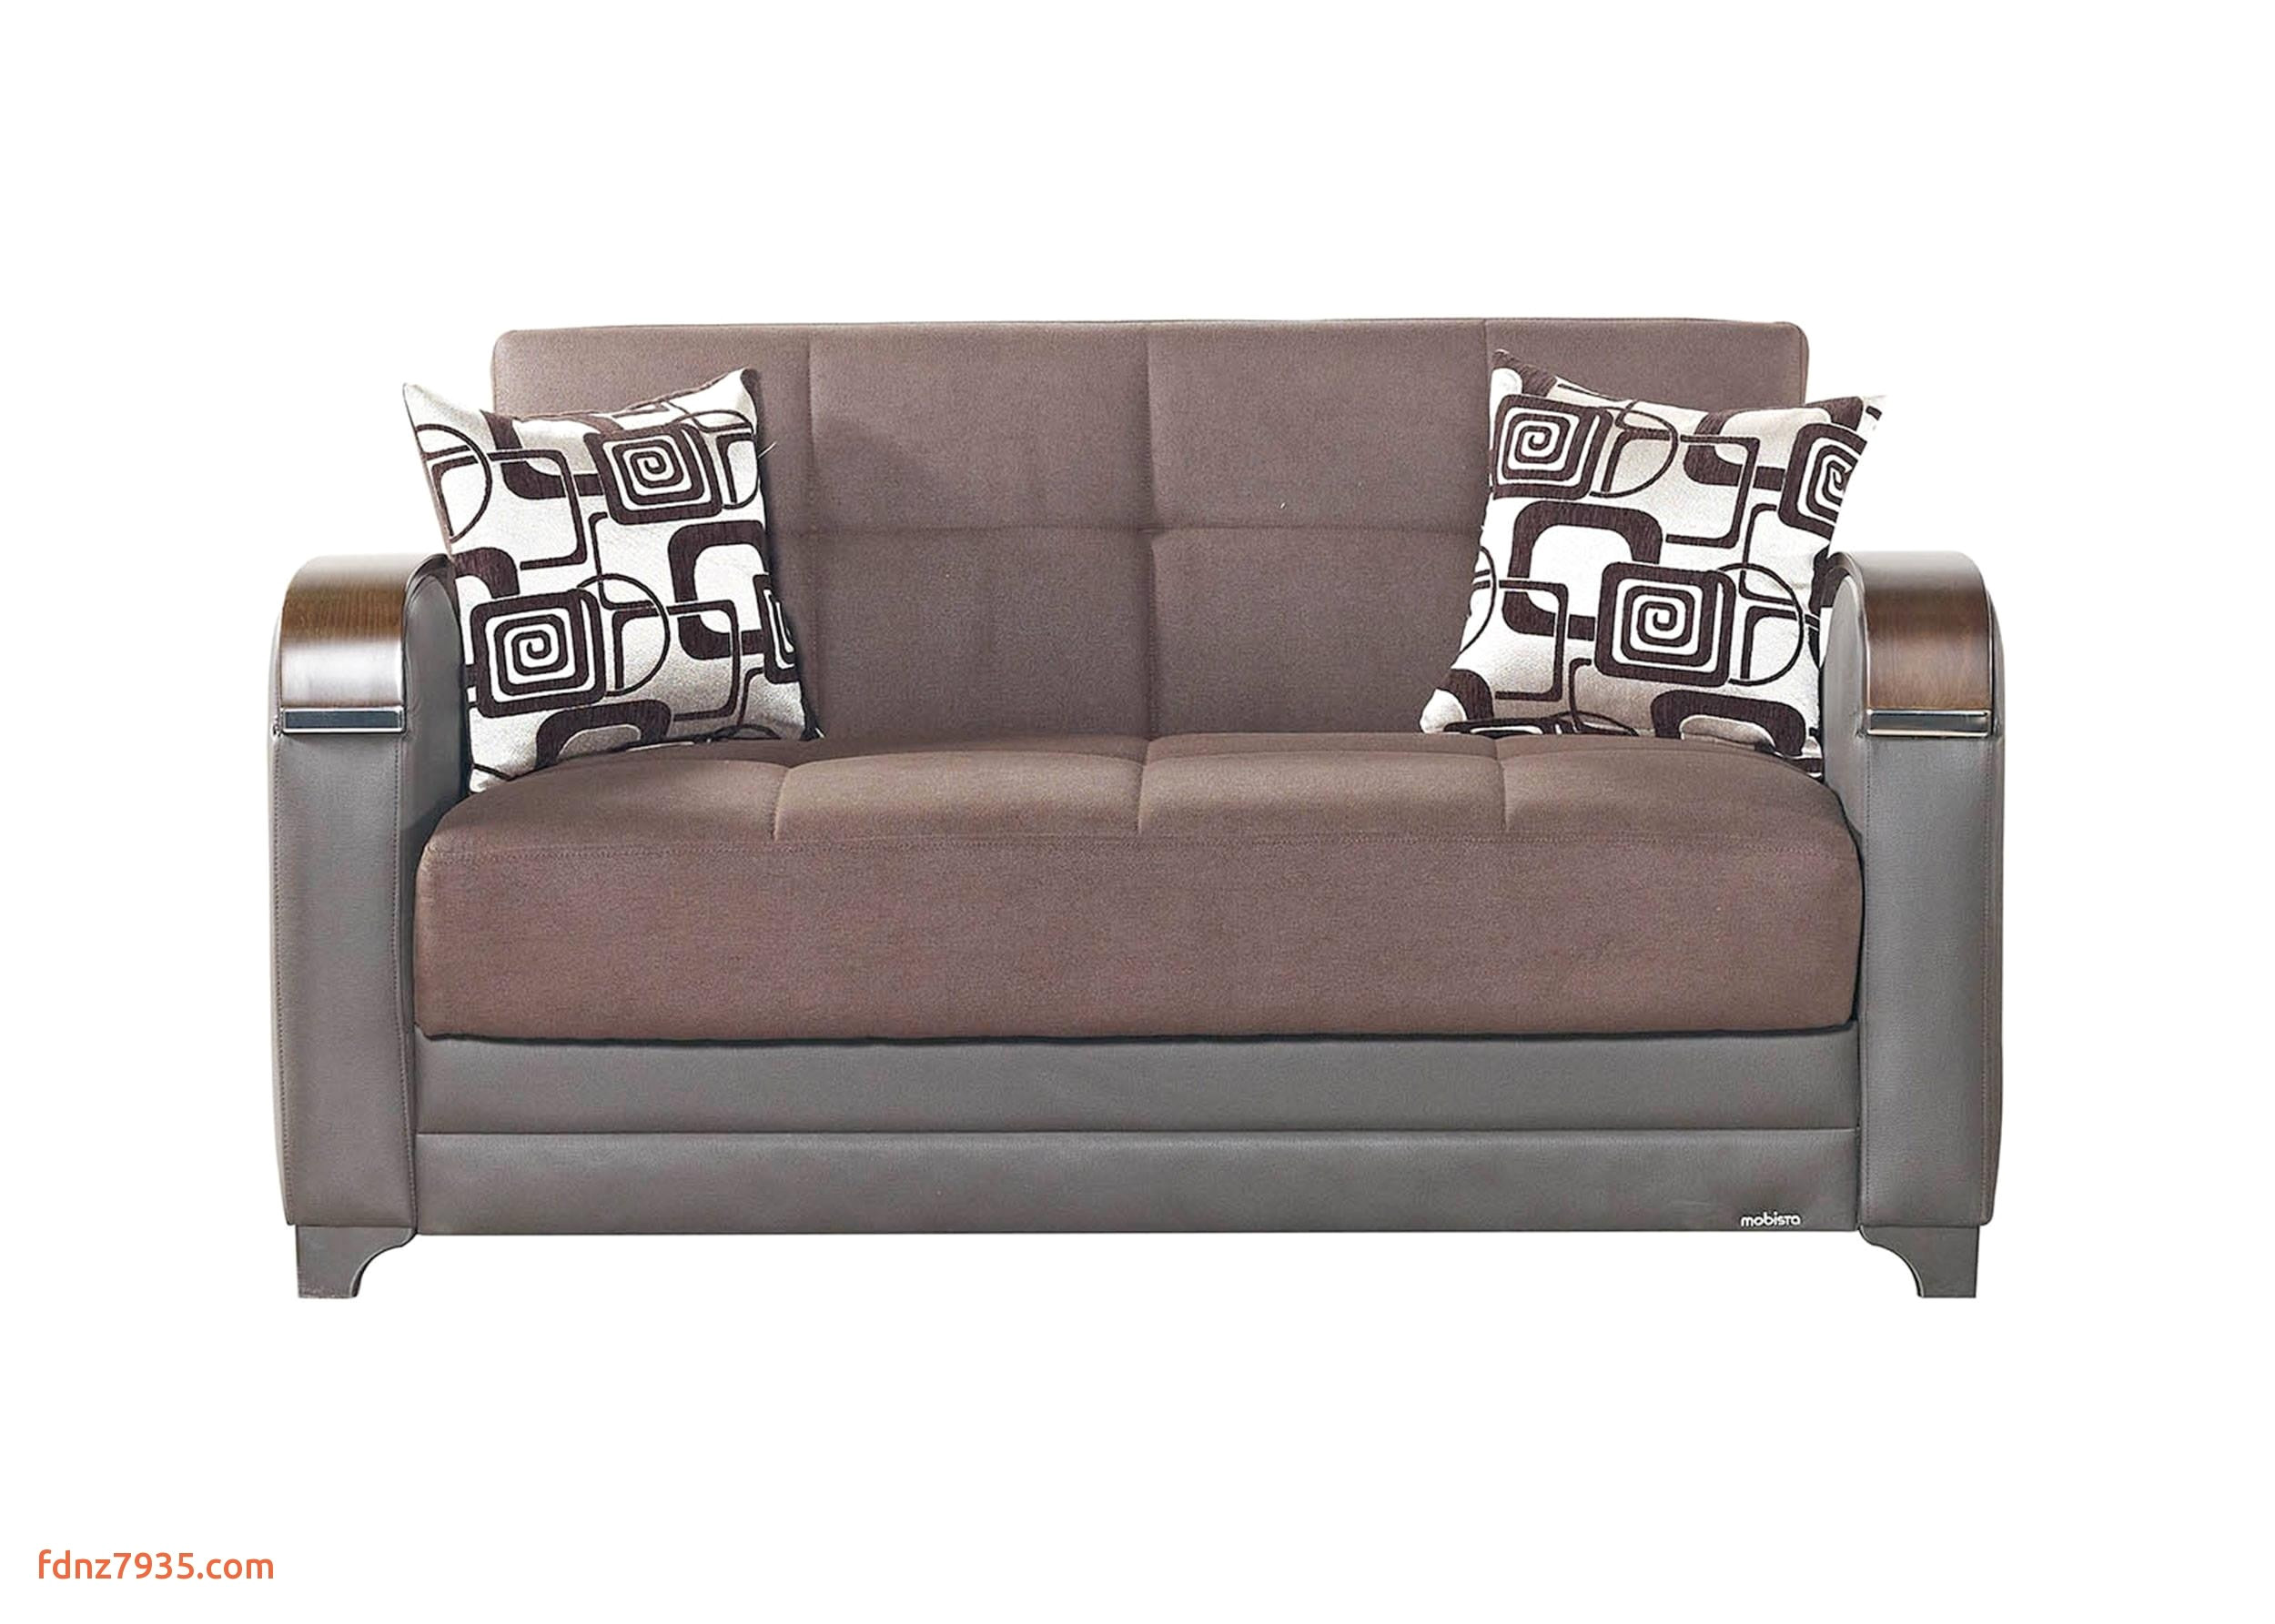 patio furniture stores in des moines ia convertible loveseat bed fresh sofa design